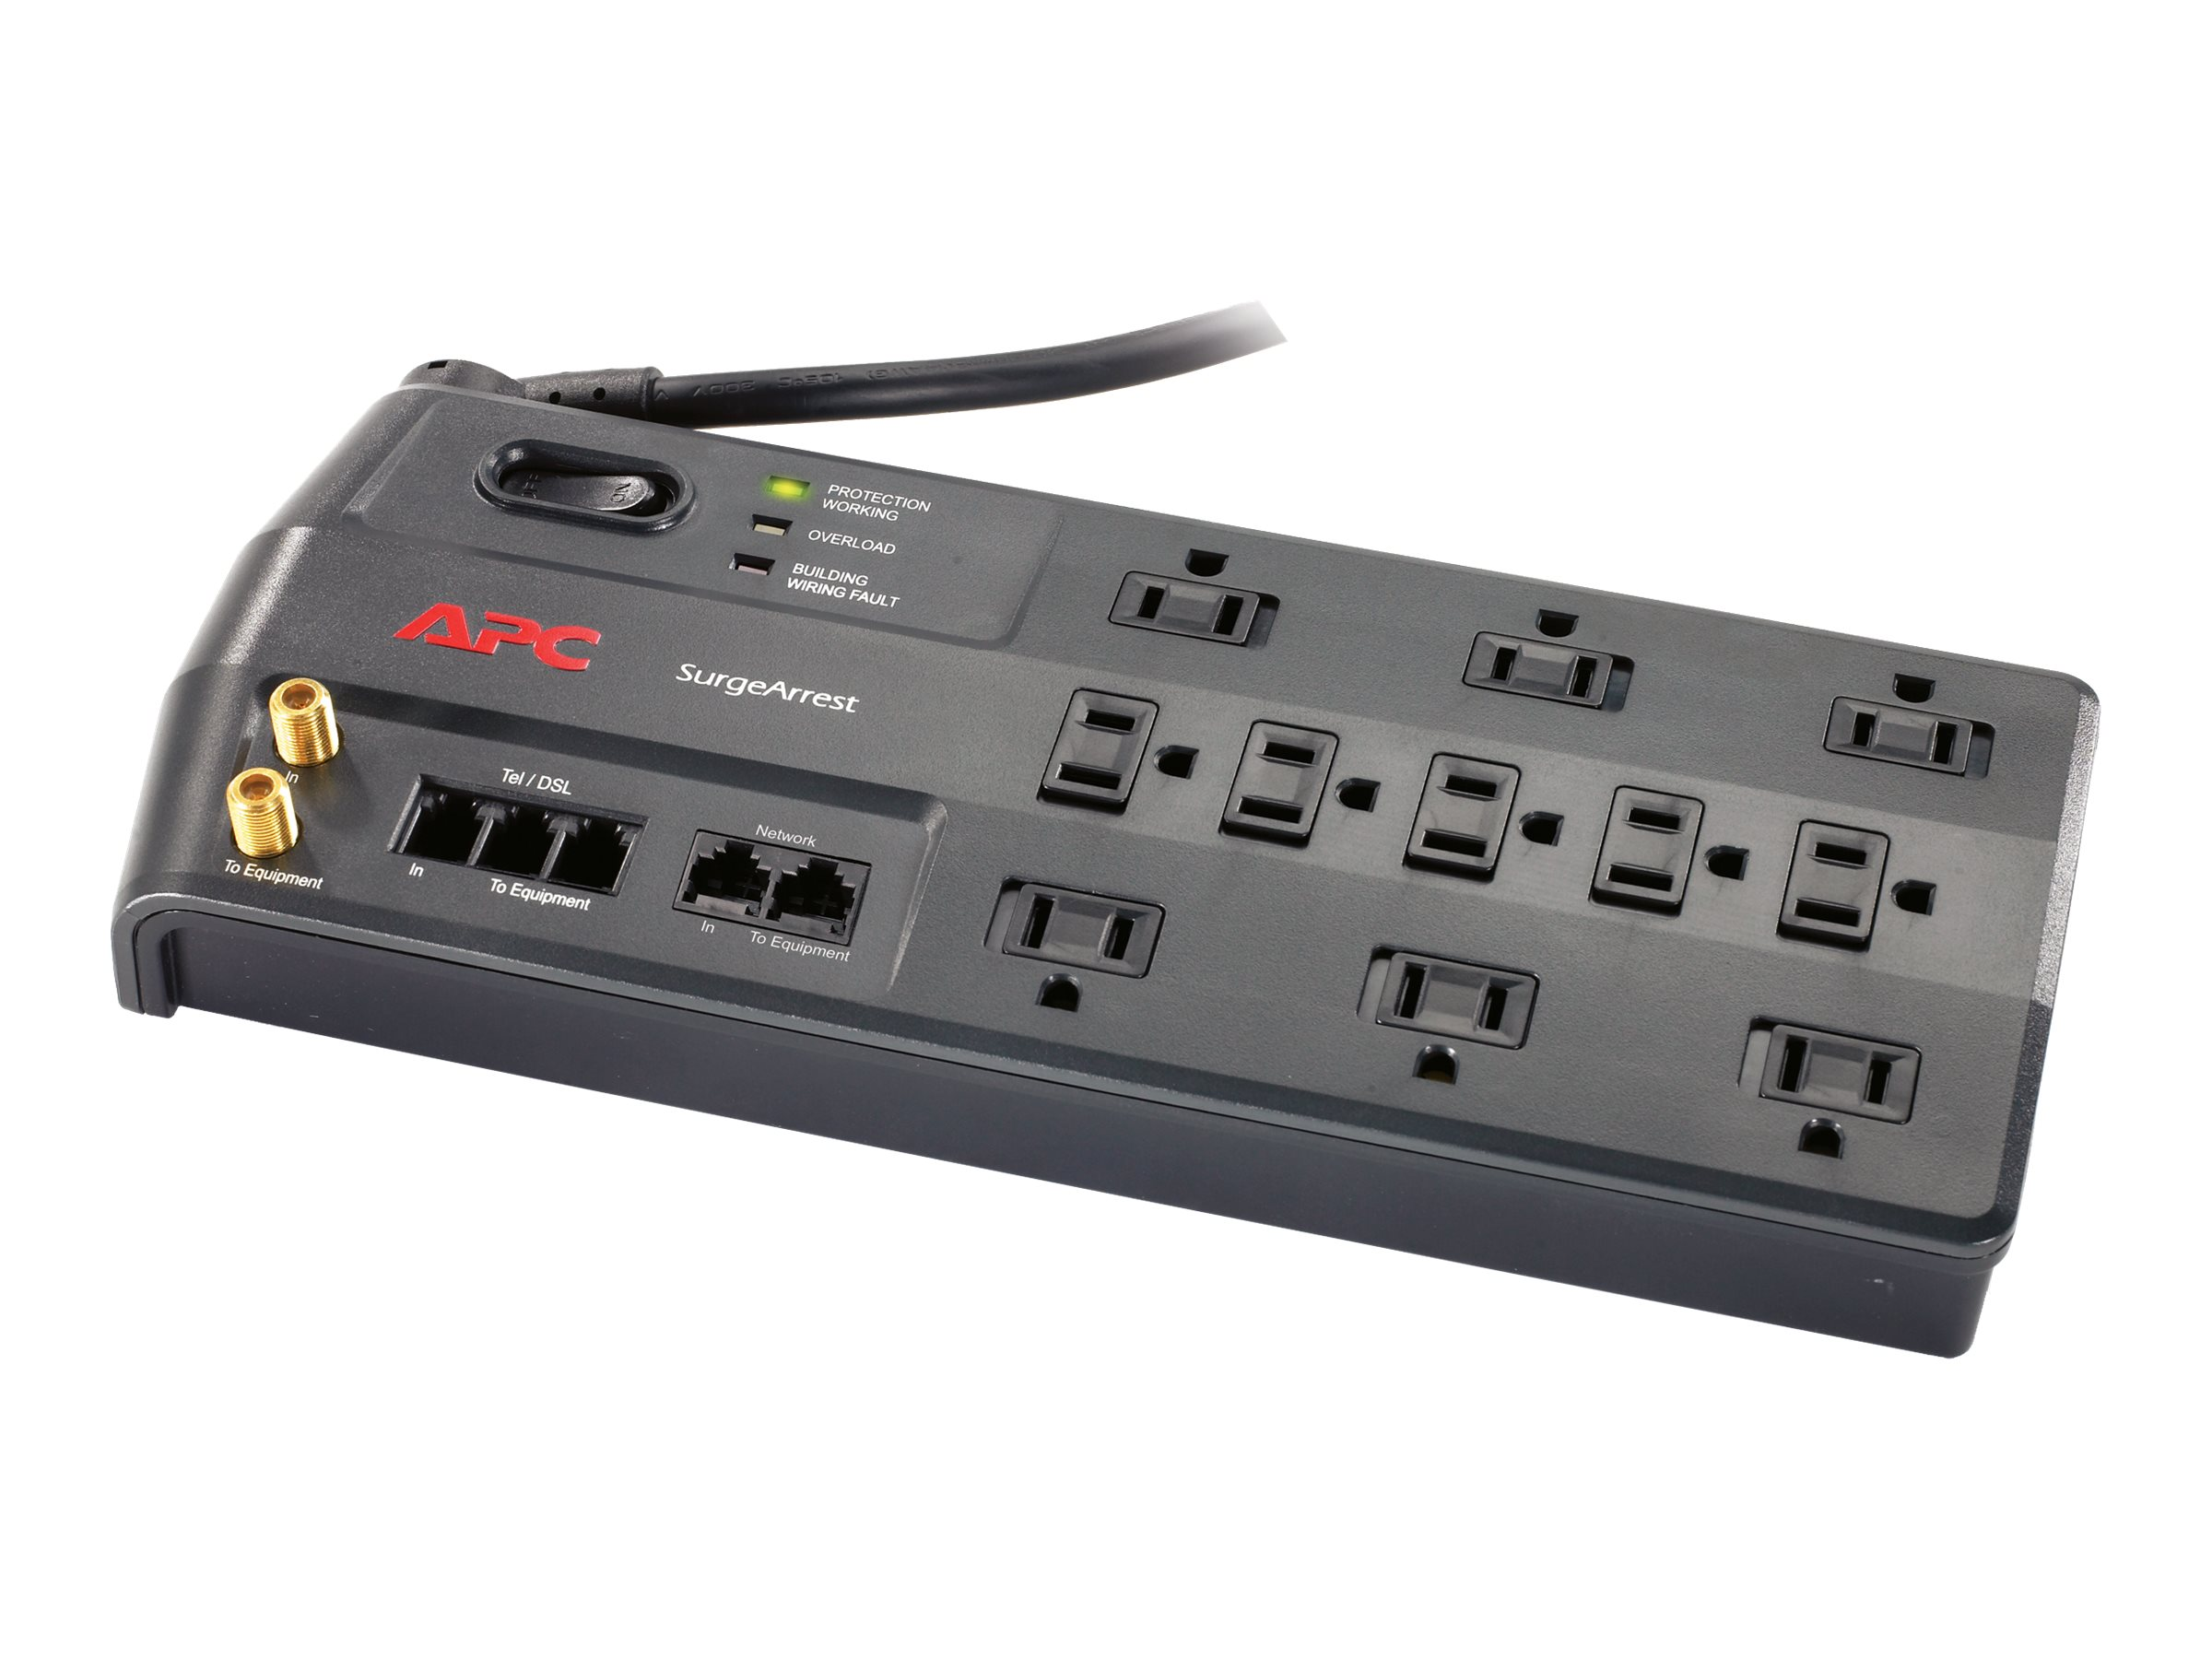 APC Performance SurgeArrest 3020 Joules with Telephone Splitter, Coax, Network, 120V, (11) Outlets, P11VNT3, 8342136, Surge Suppressors